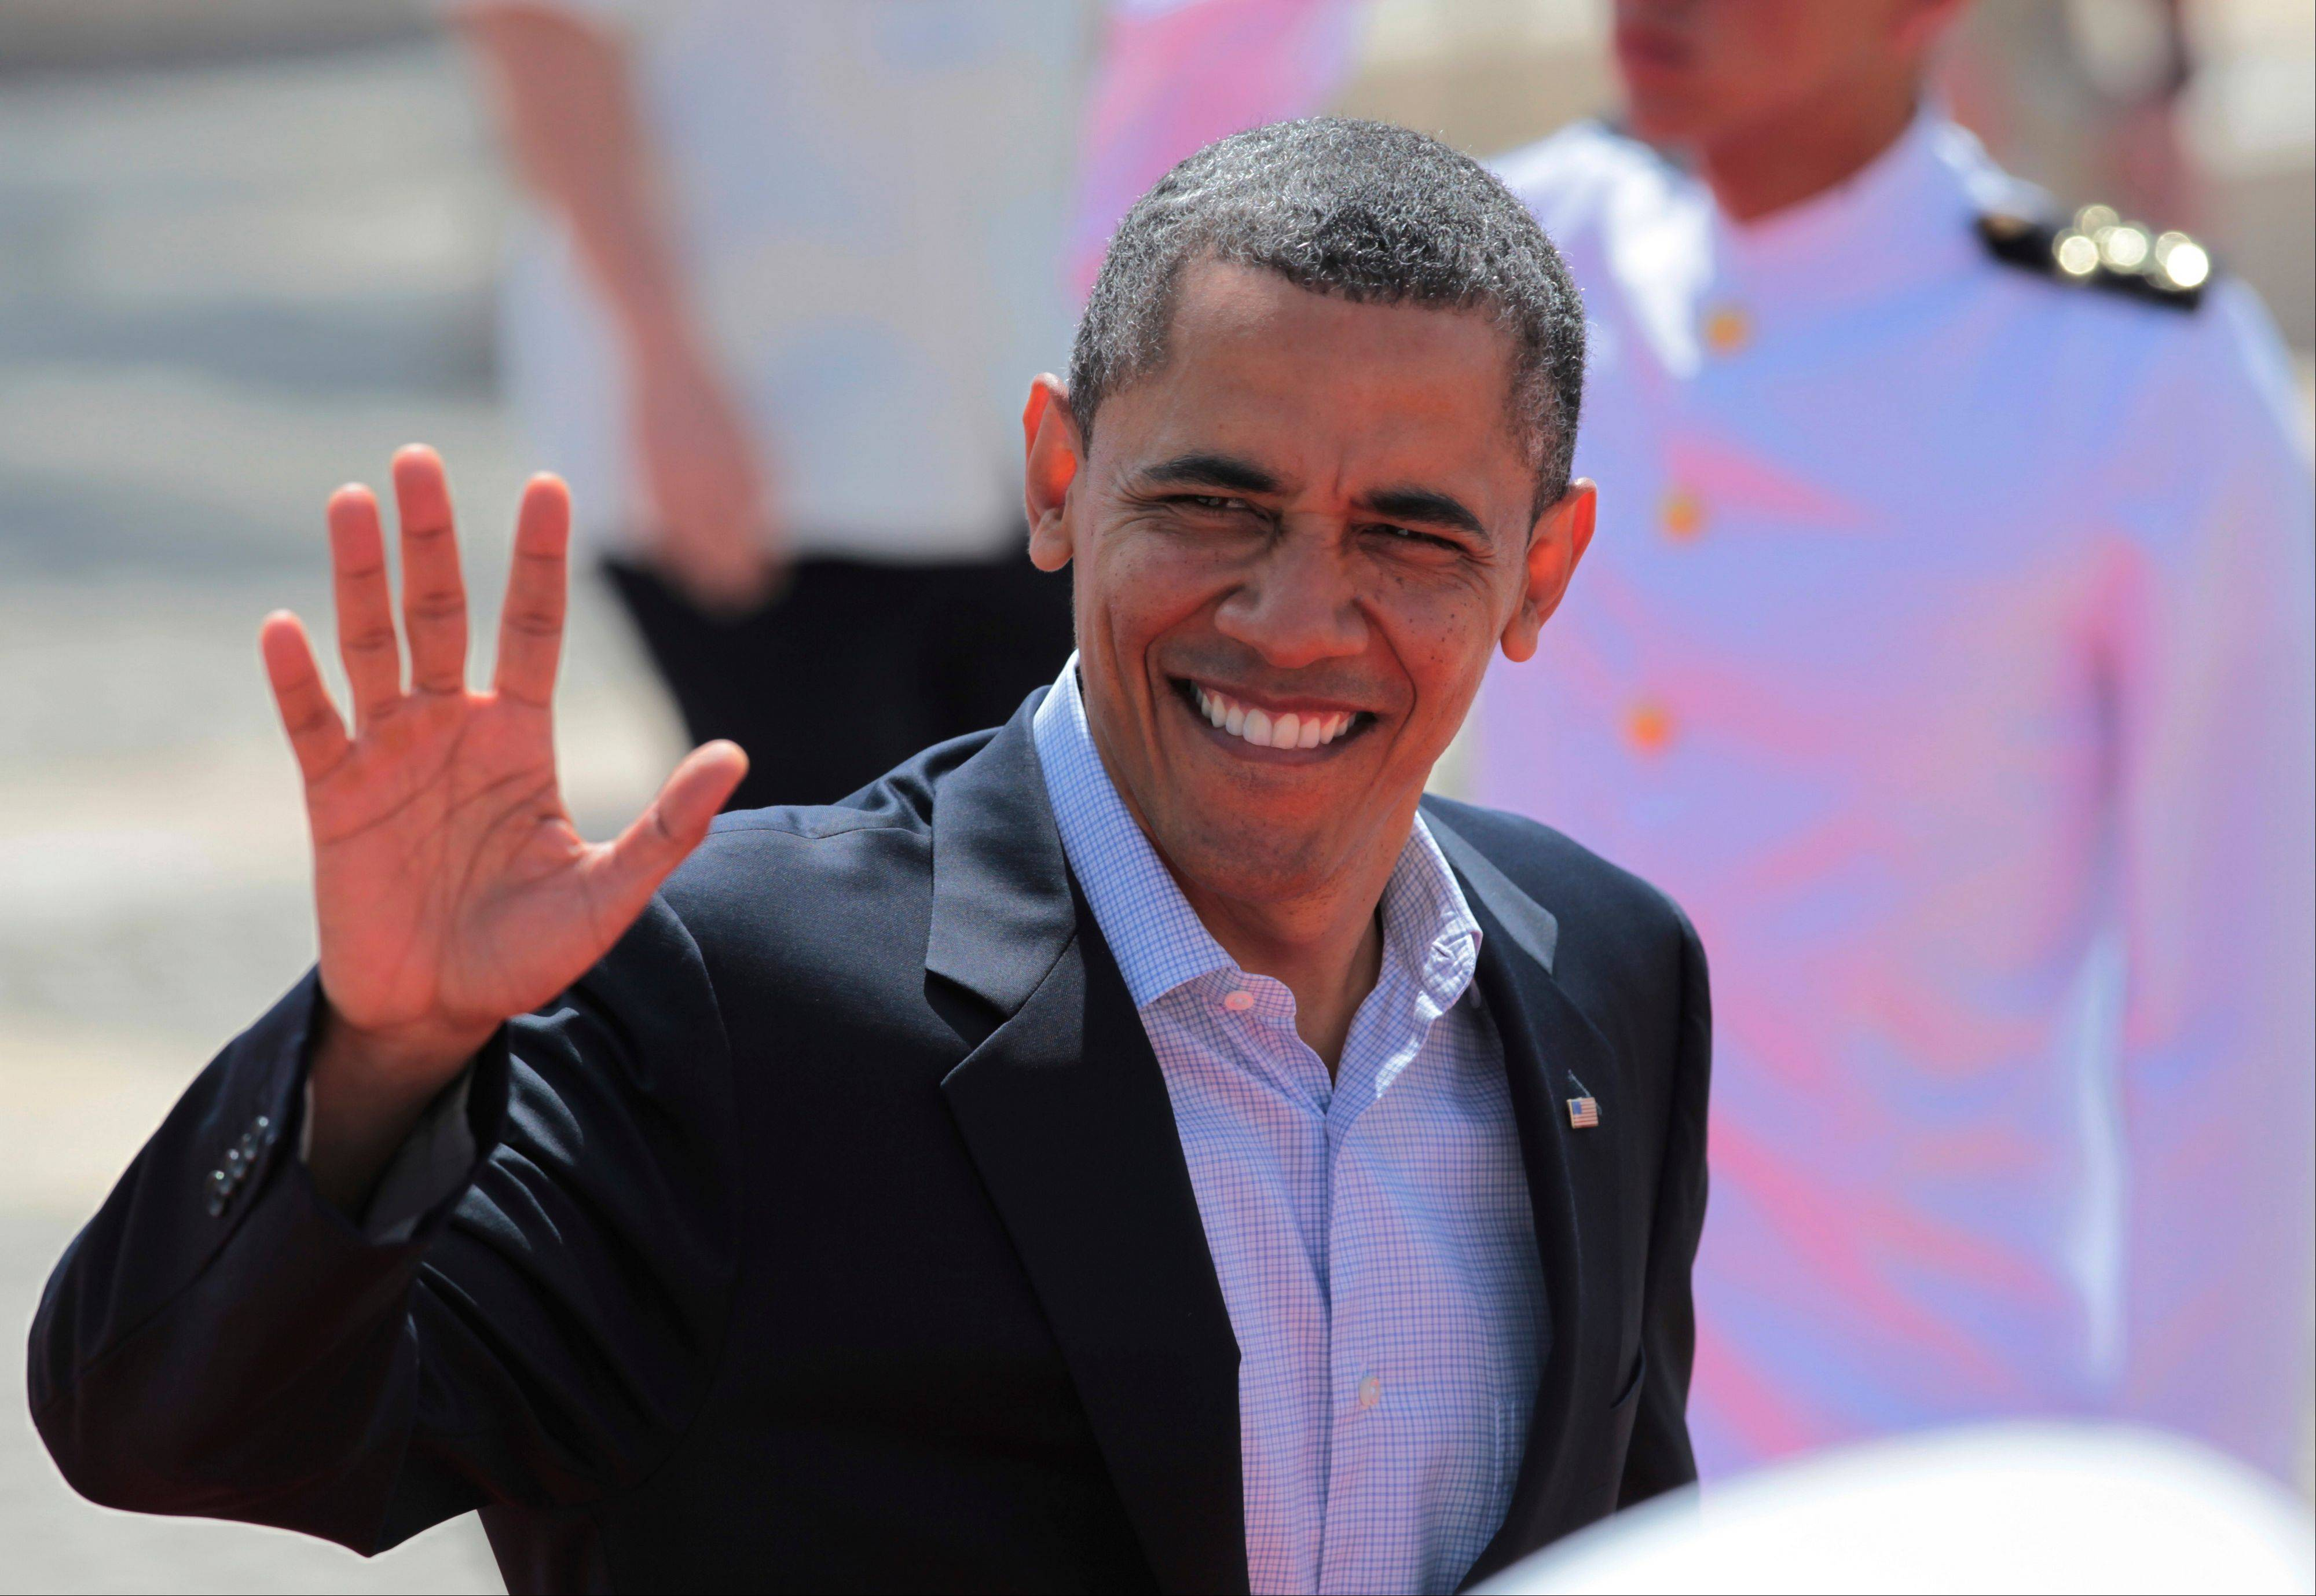 President Barack Obama waves as he arrives Sunday at the Convention Center for the second working session of the sixth Summit of the Americas in Cartagena, Colombia.